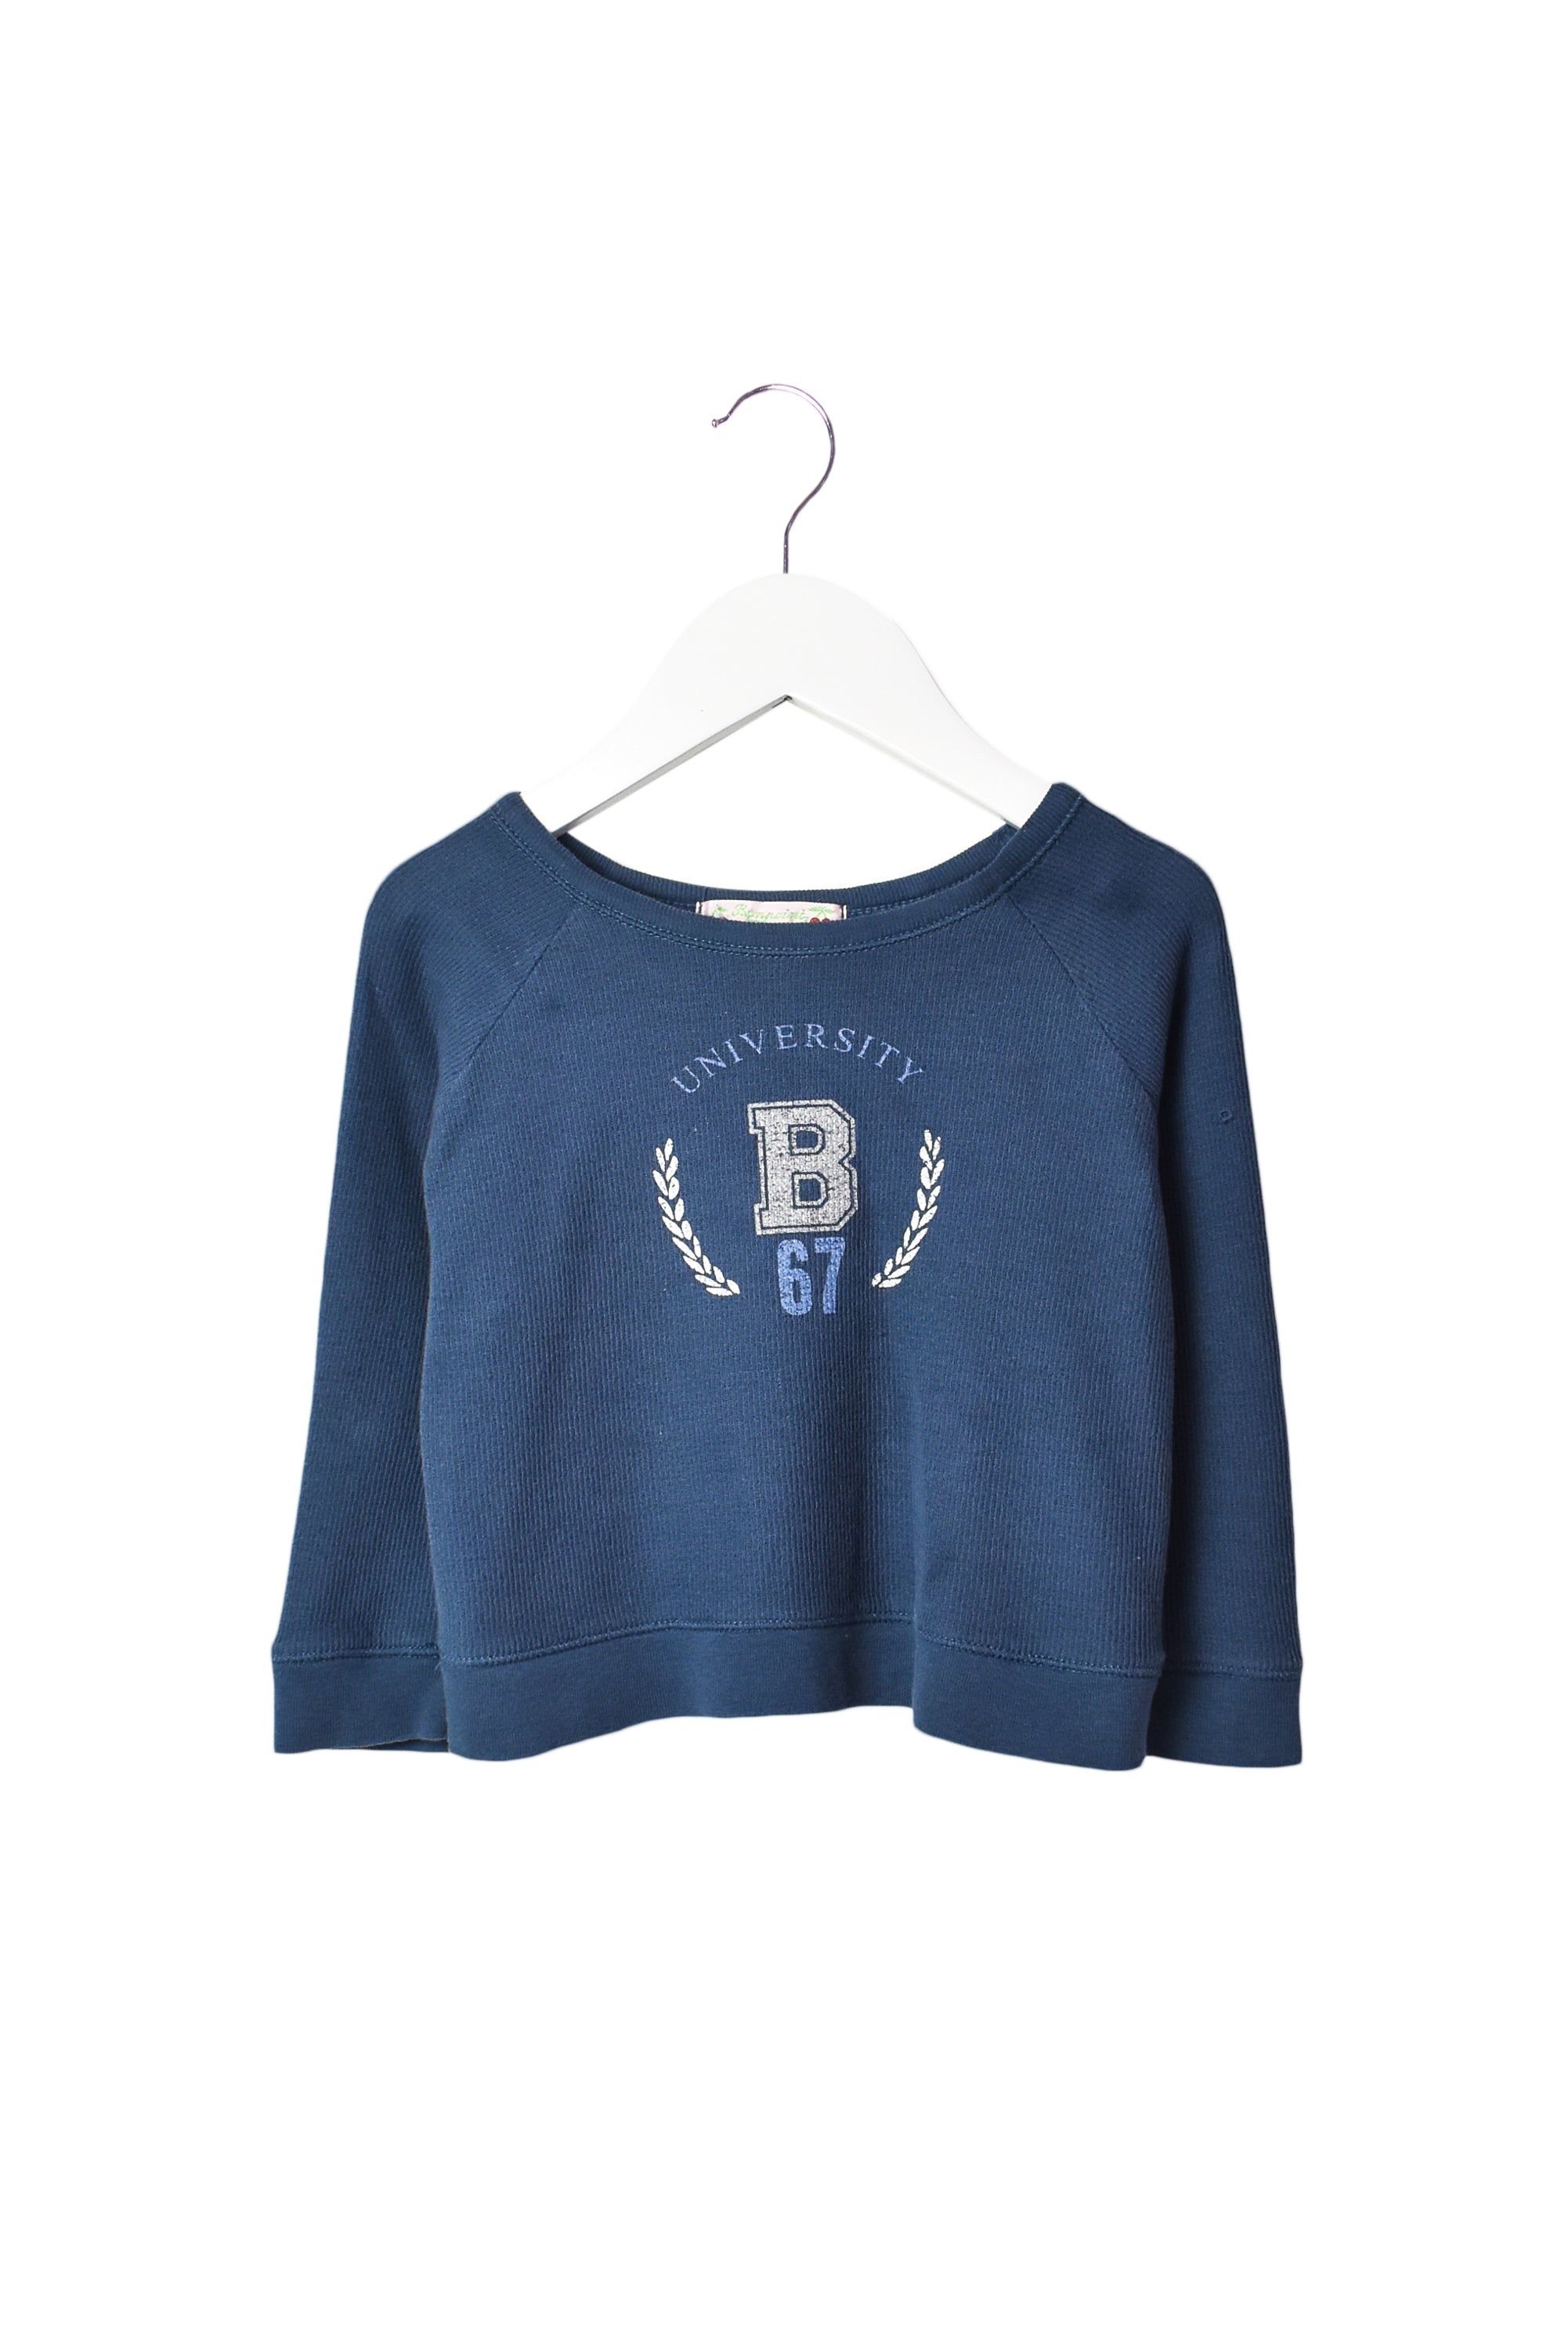 10007352 Bonpoint Kids~ Sweater 2T at Retykle